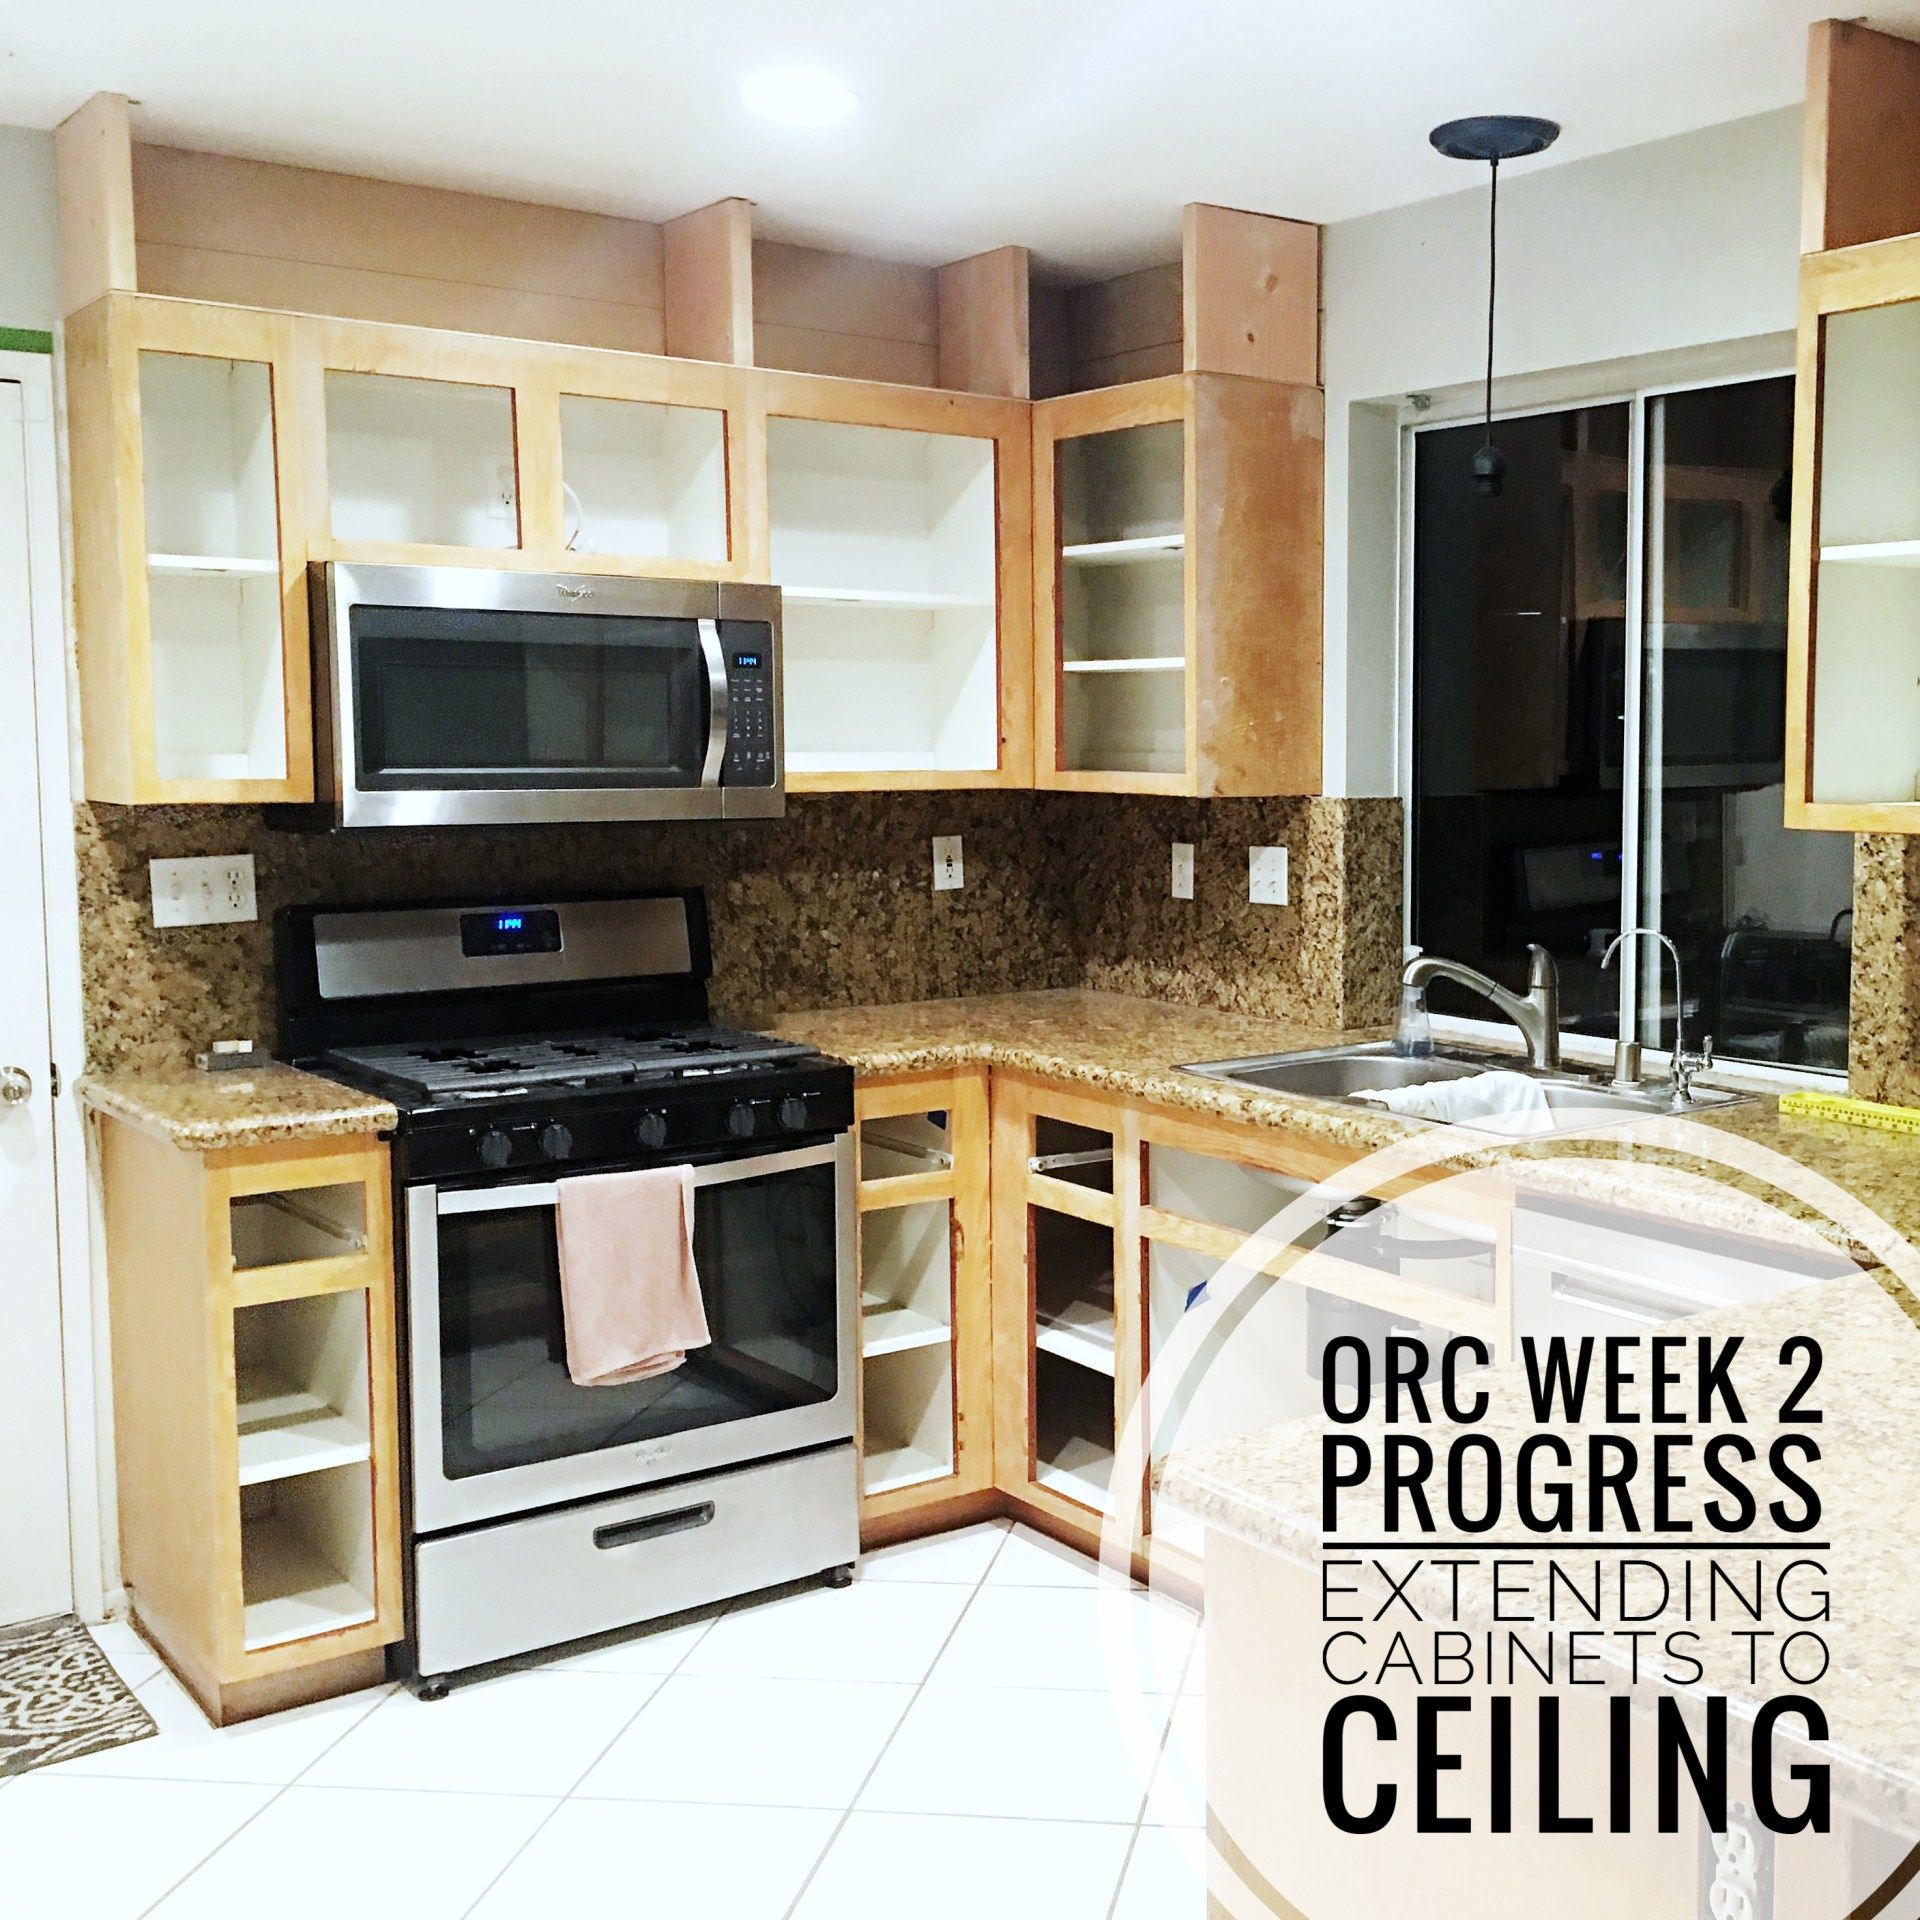 How To Extend Cabinets To Ceiling Cabinets To Ceiling Cabinets To Go Cabinet